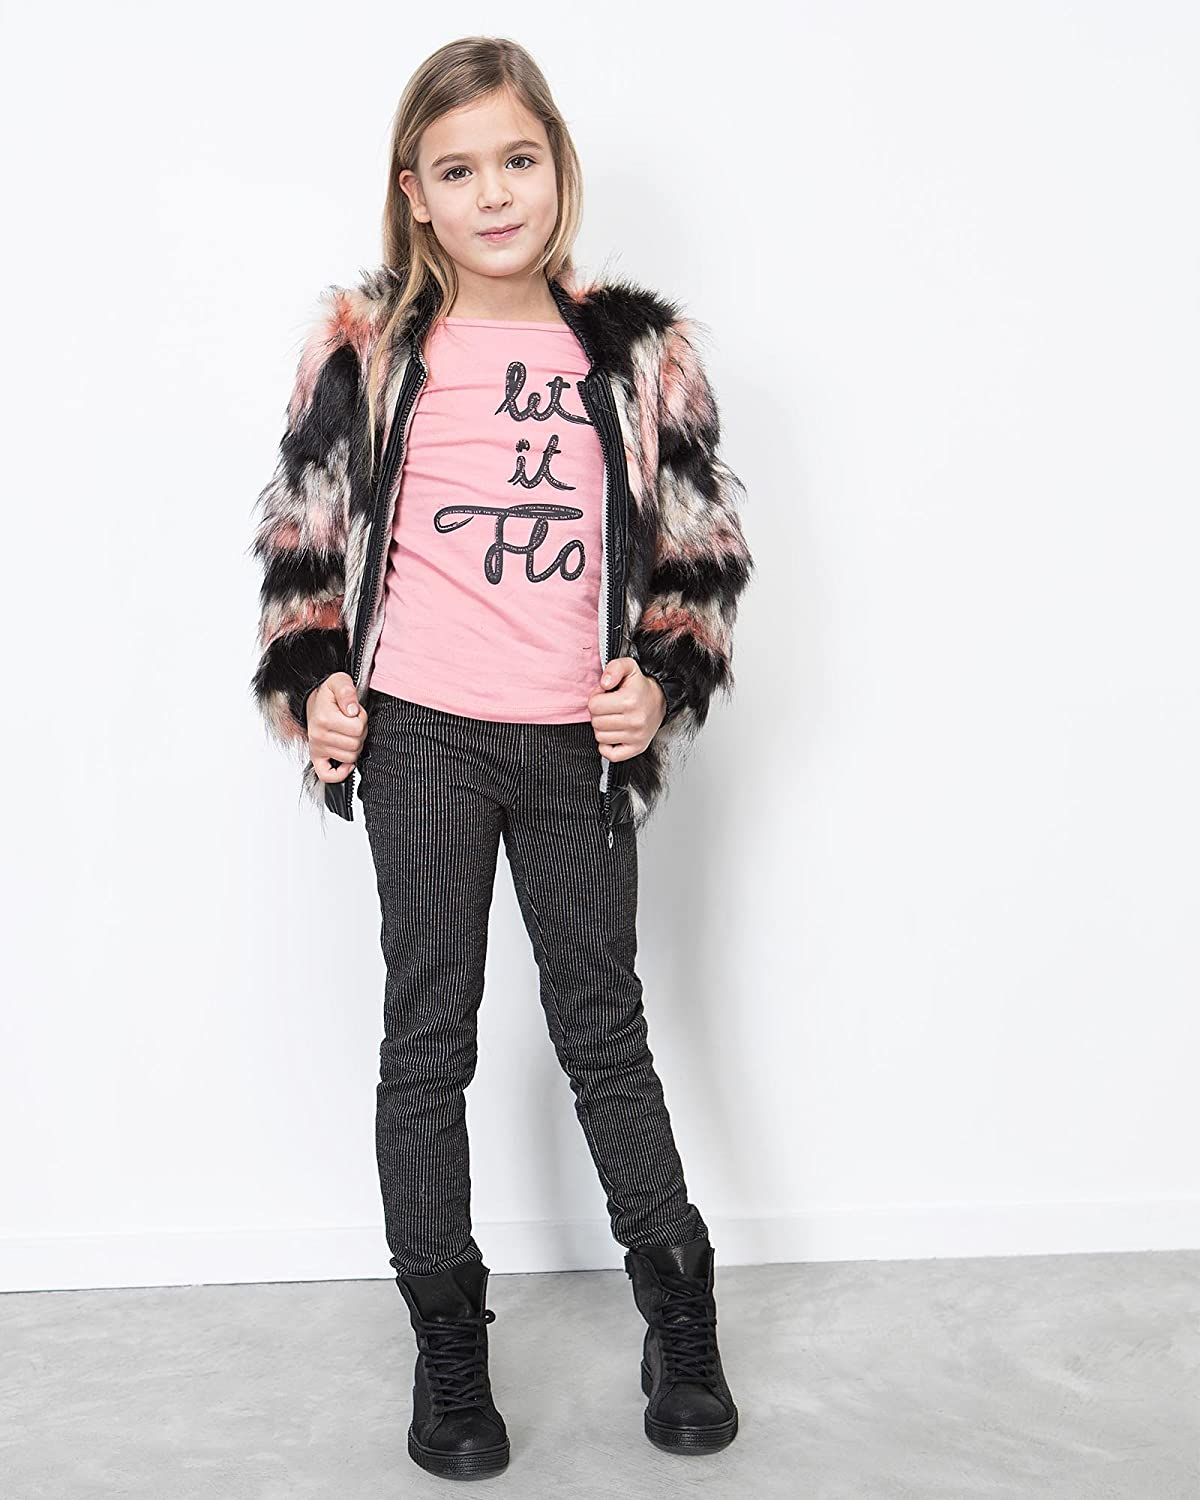 Sizes 6-14 Dress Like Flo Girls Striped Skinny Pants